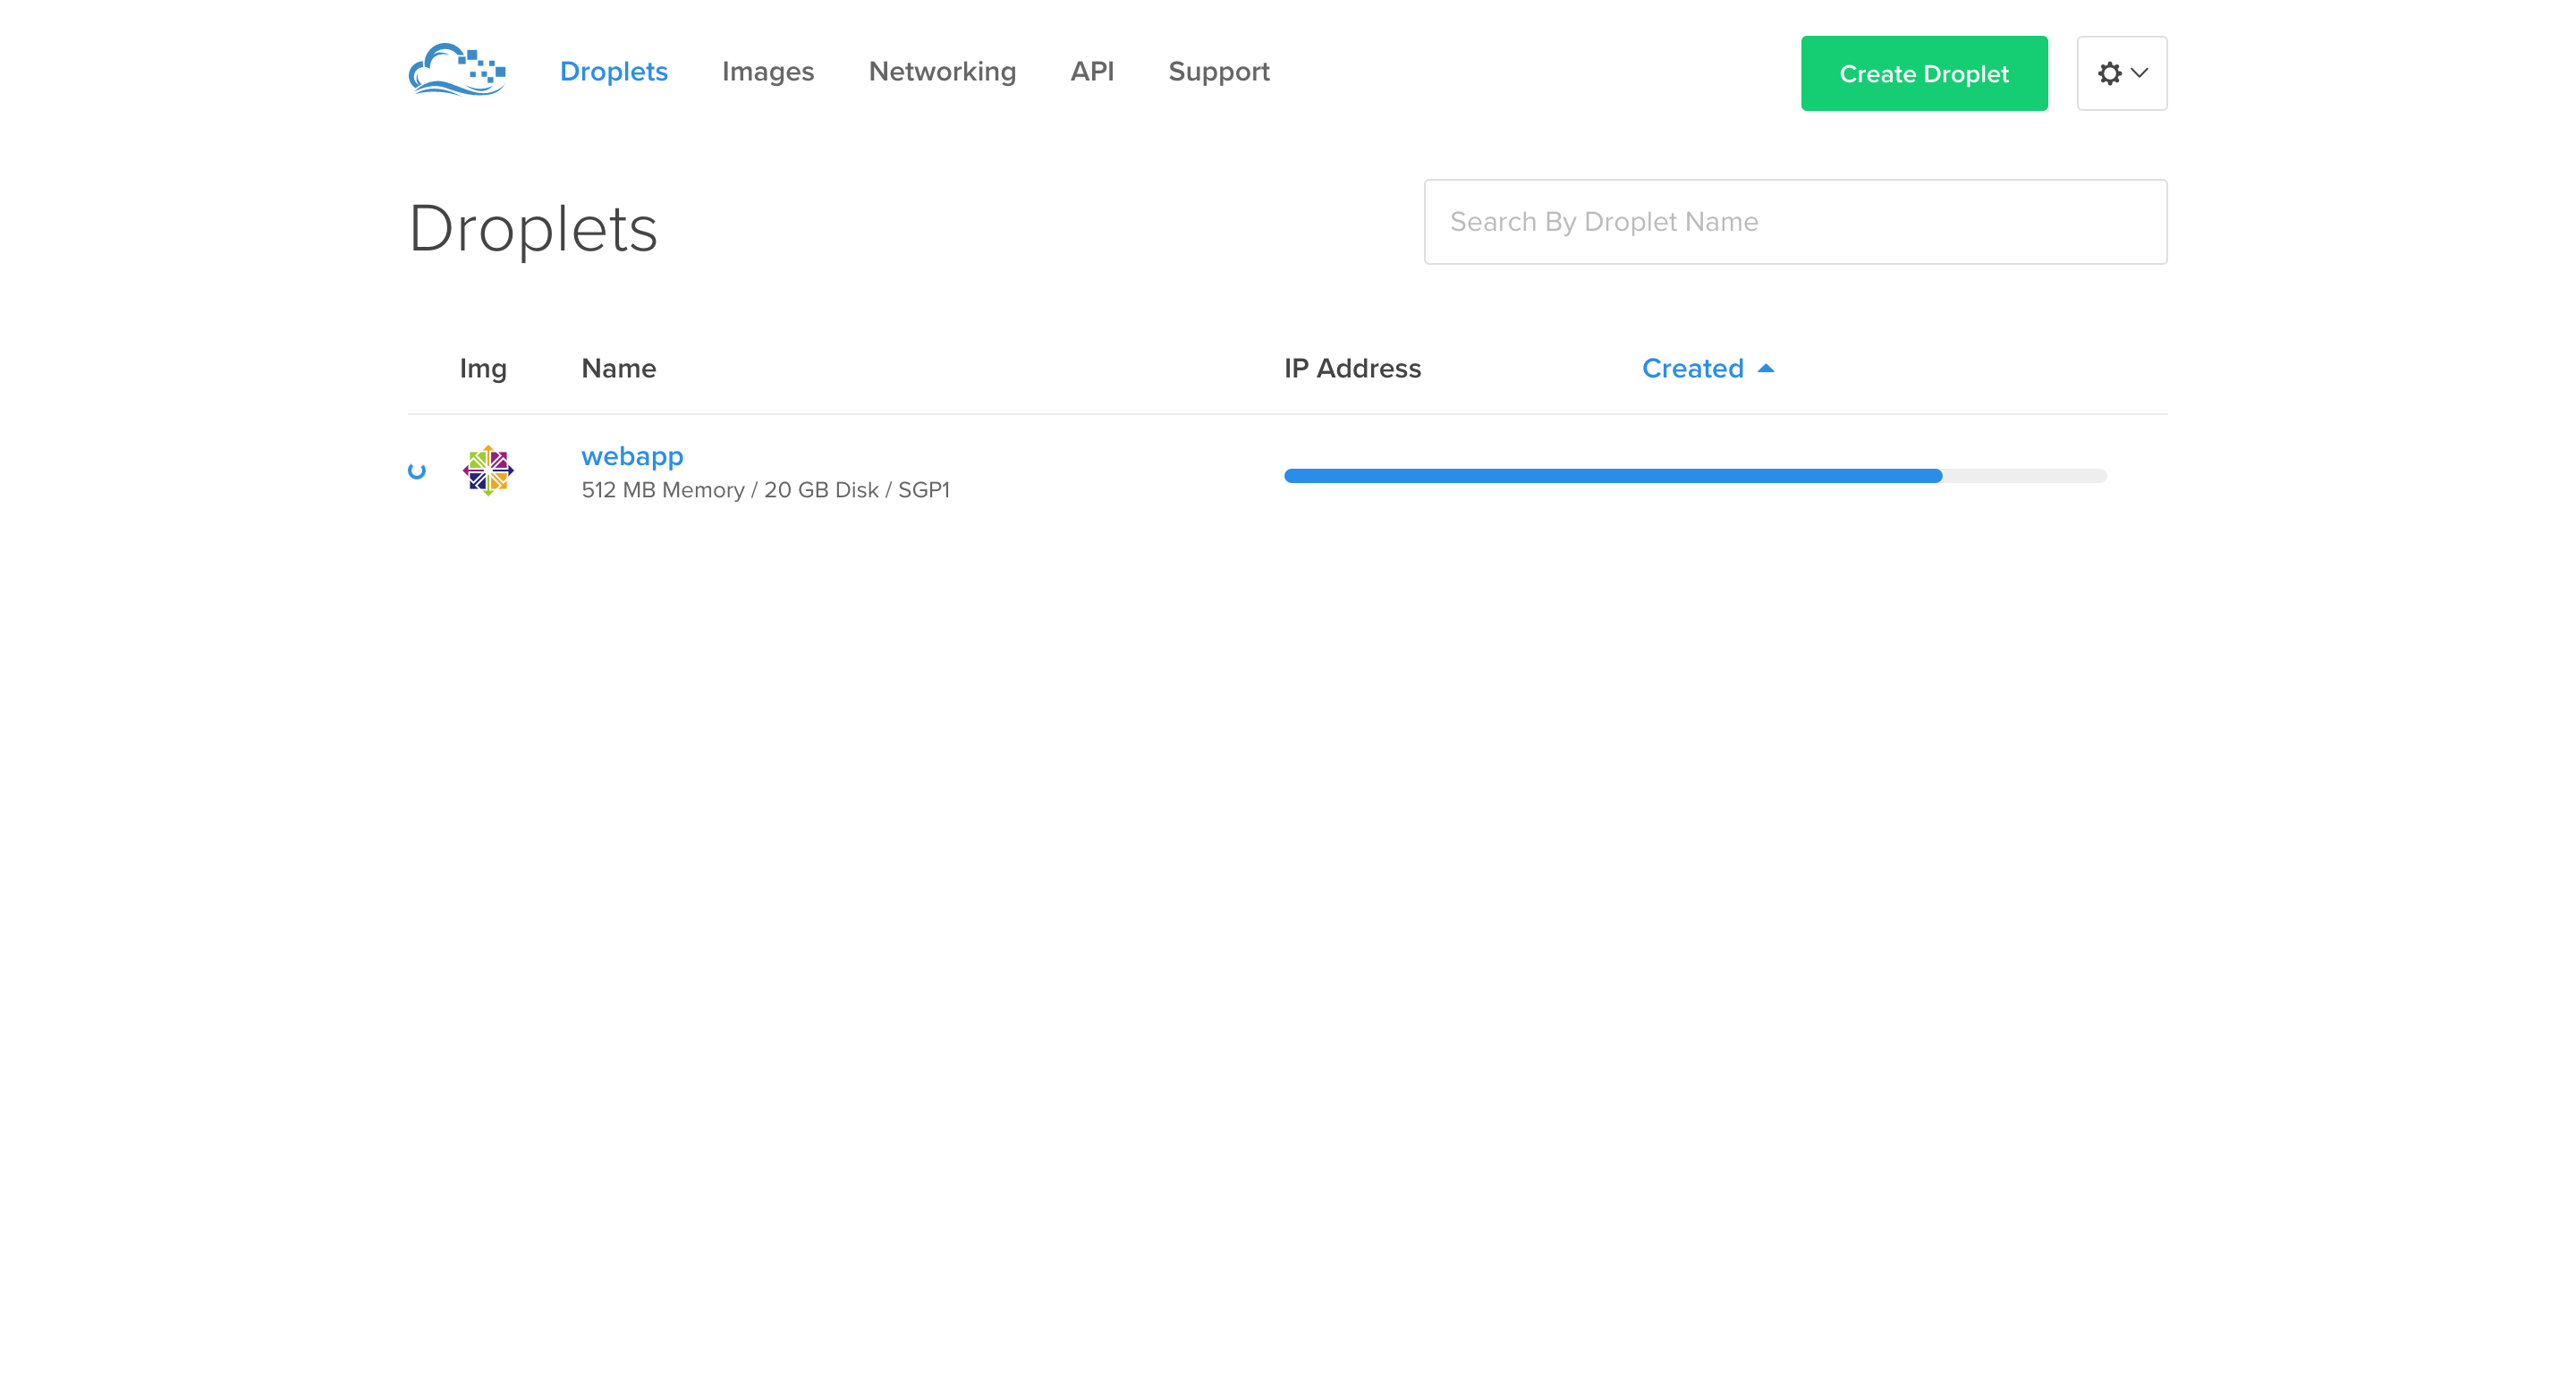 screencapture-cloud-digitalocean-com-droplets-1459722602880.png (147.8 kB)